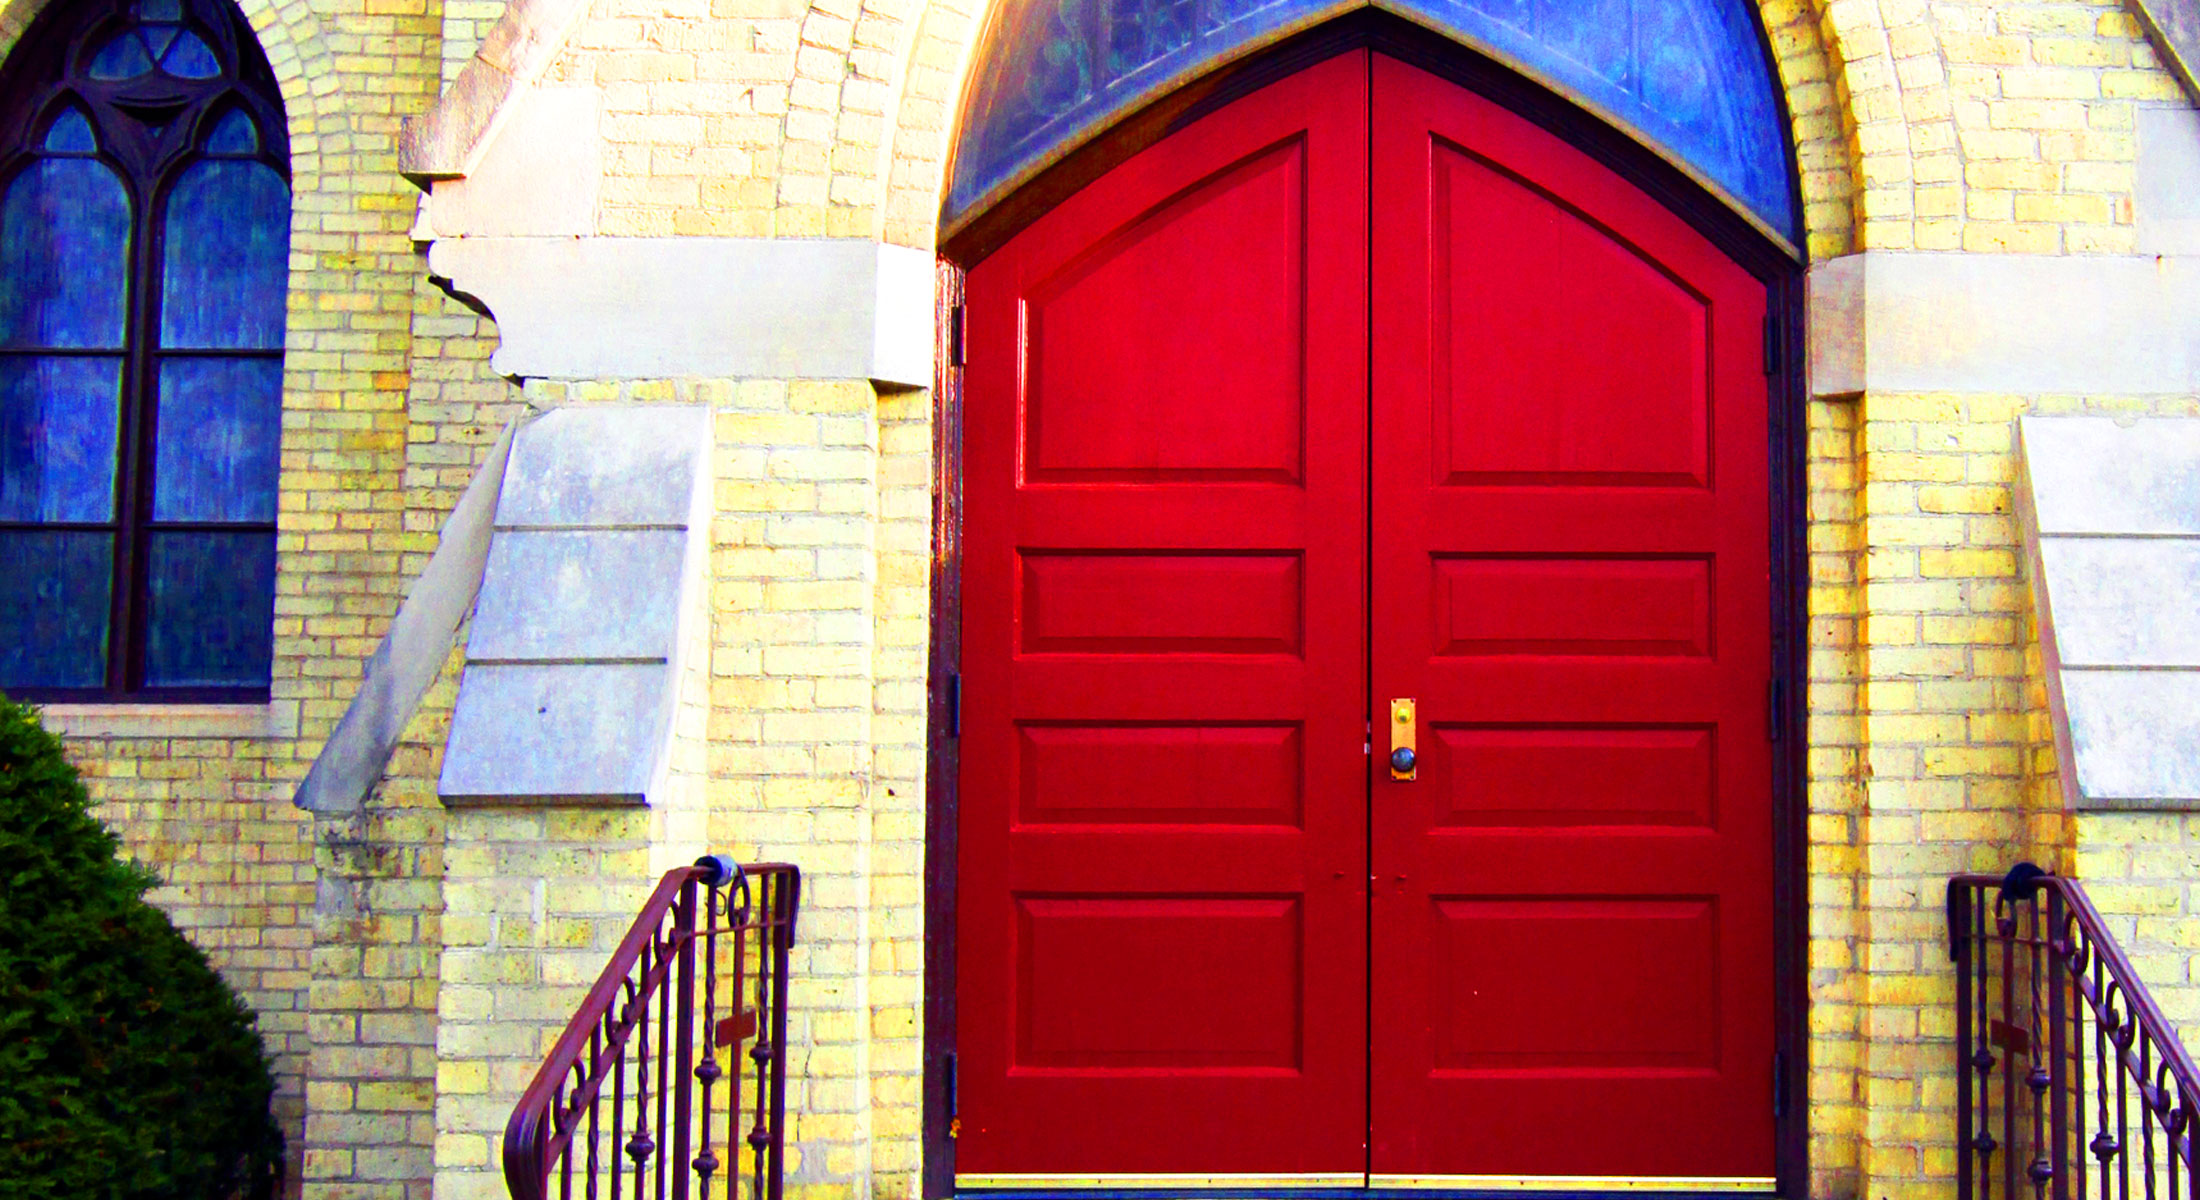 A picture of the front door of the church.